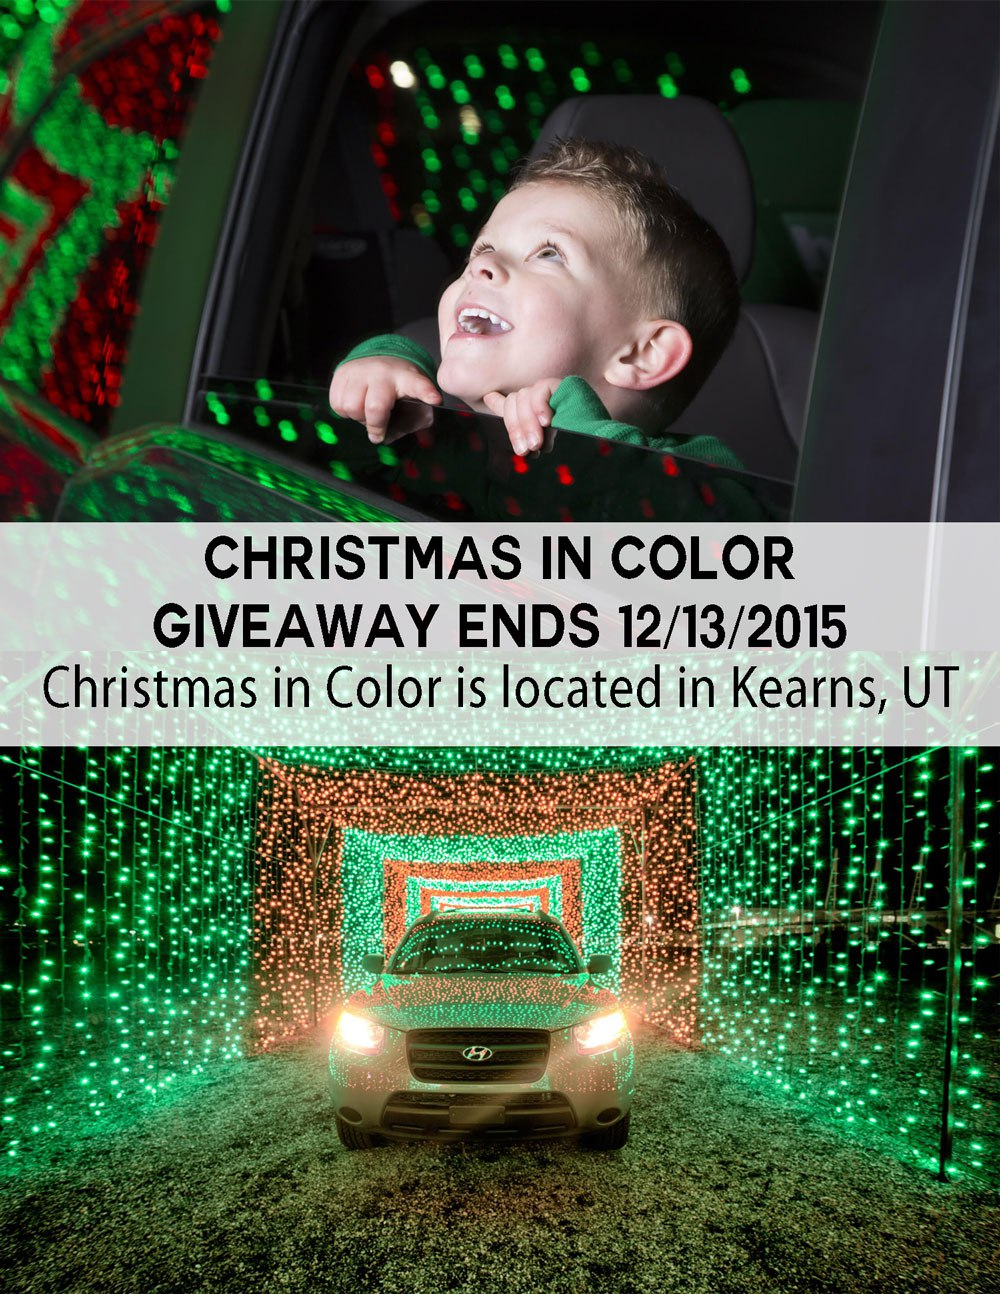 Enter this giveaway for a ticket to Christmas in Color located in Kearns, Utah. Contest ends 12/13/15